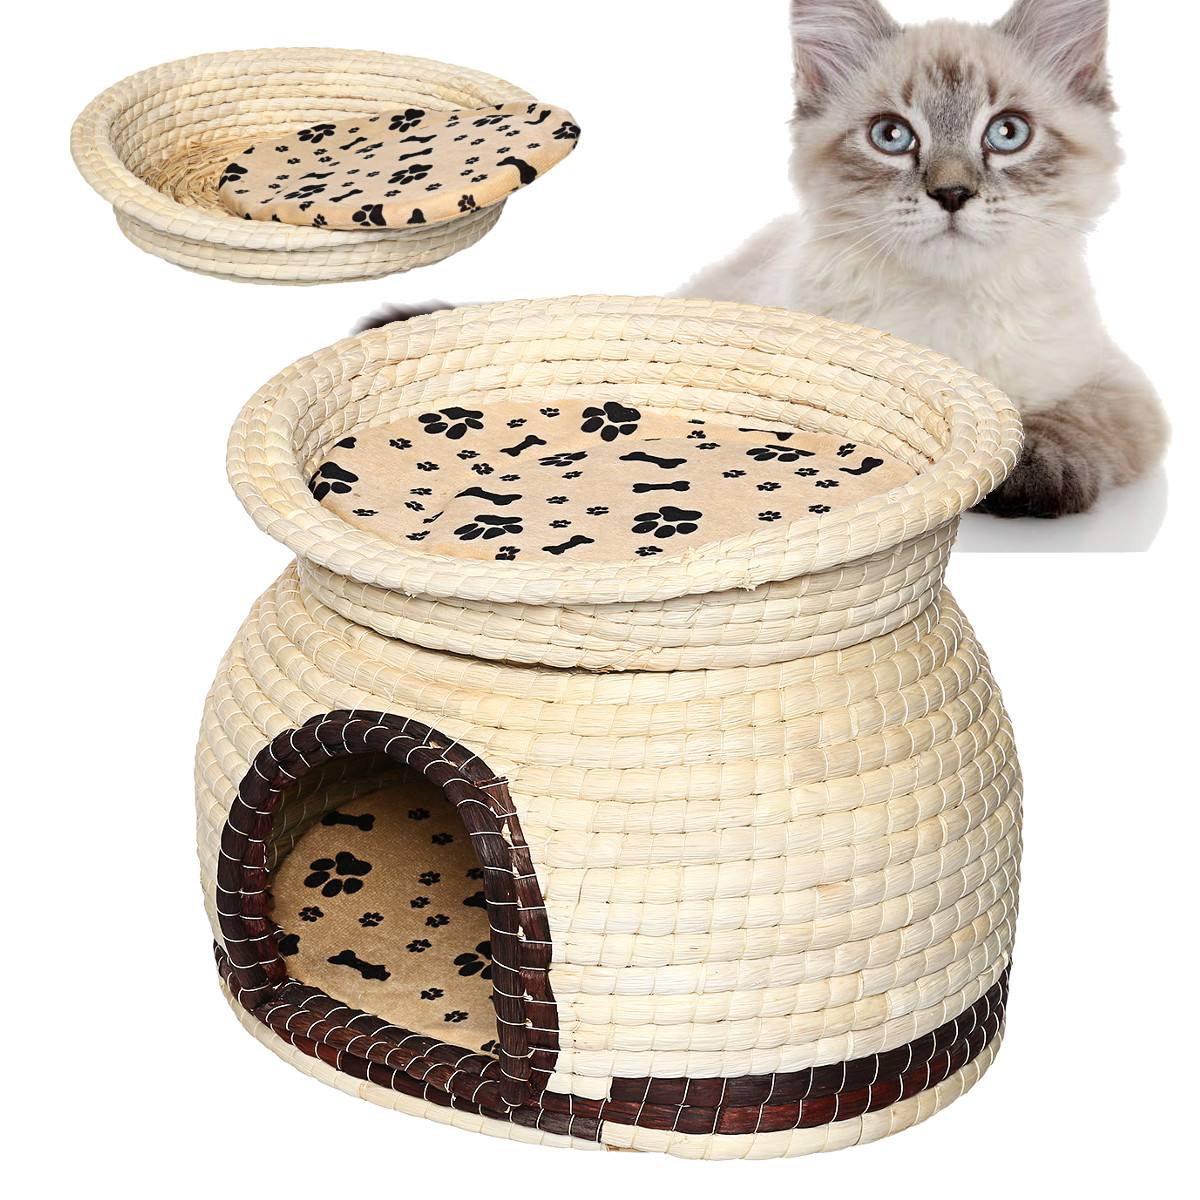 New 2-Tier Tent <font><b>Kennel</b></font> Puppy-Mat Pet-House Willow Cat Tree House <font><b>Dog</b></font> <font><b>Kennel</b></font> Double Layers image